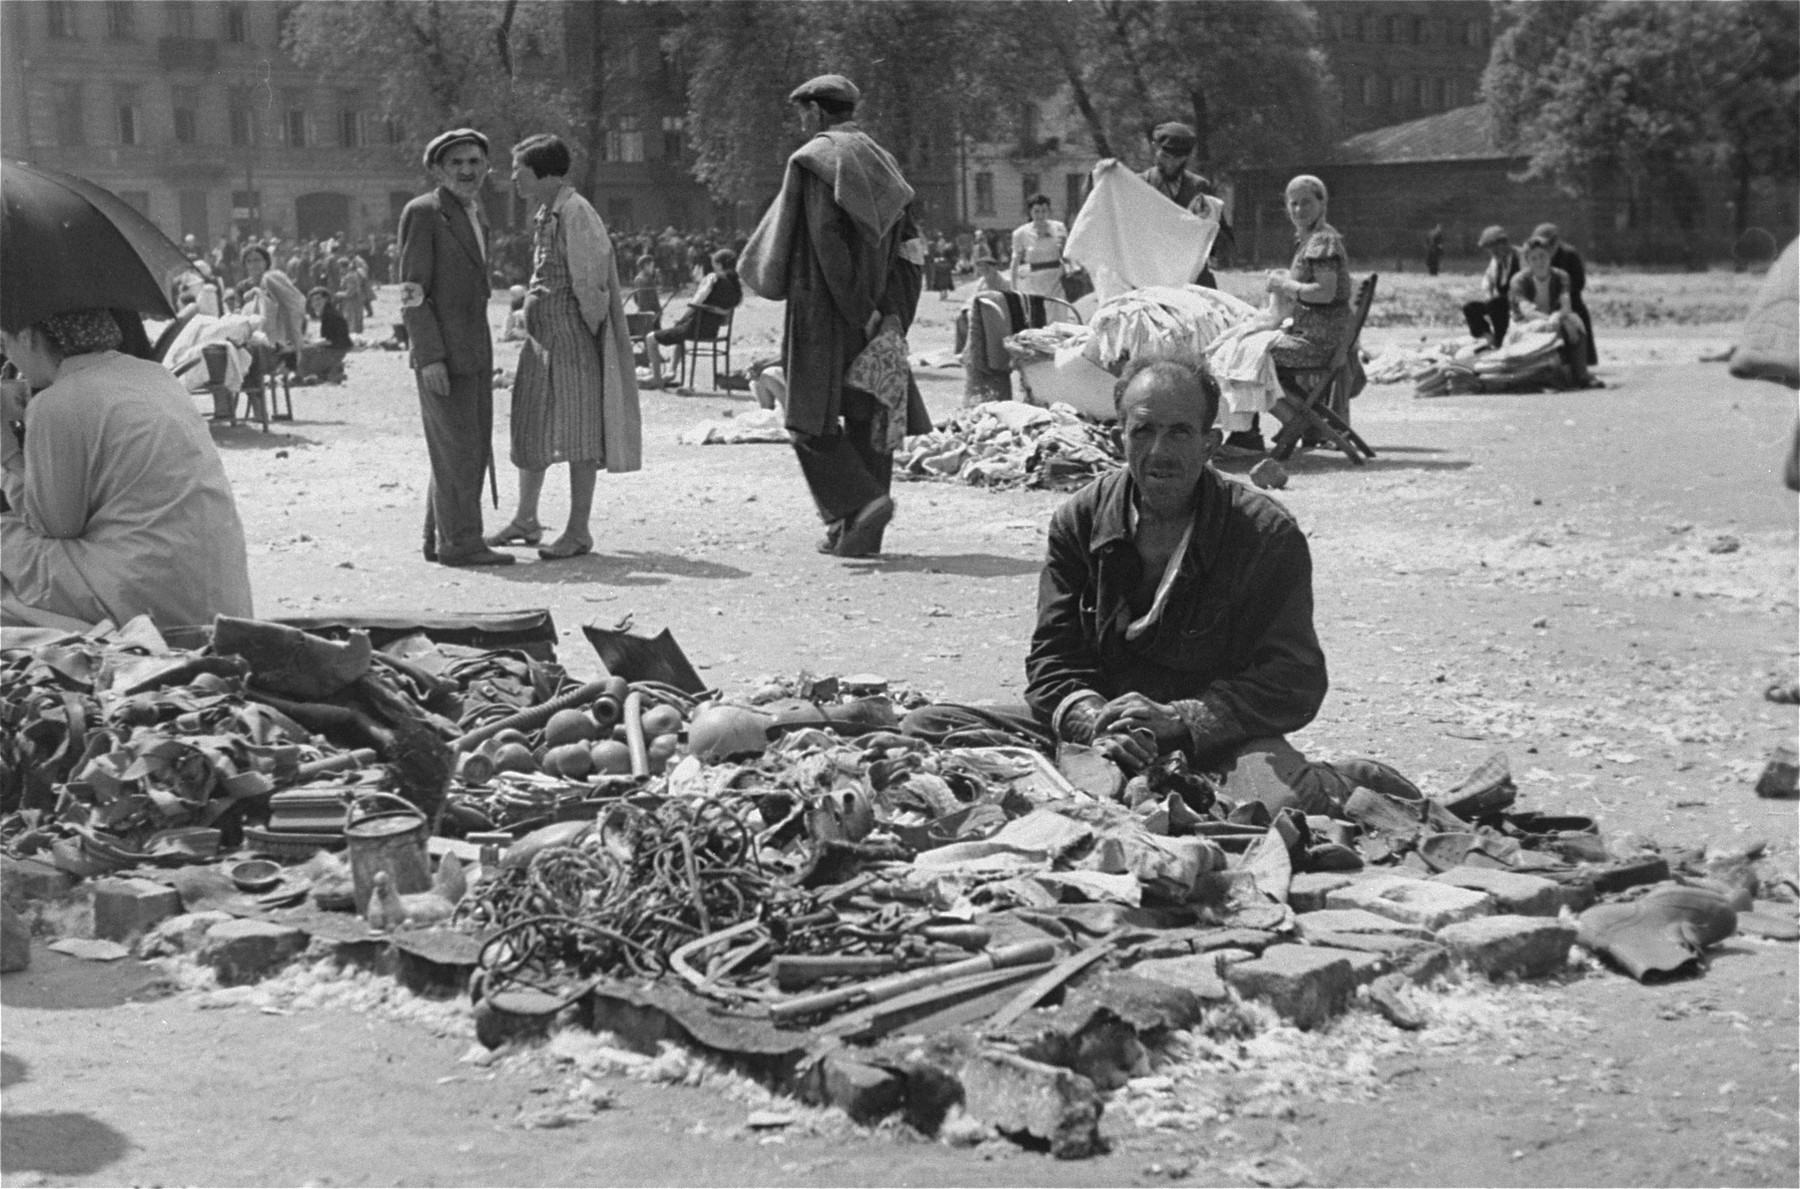 A Jewish vendor offers odds and ends for sale at an open air market in the Warsaw ghetto.